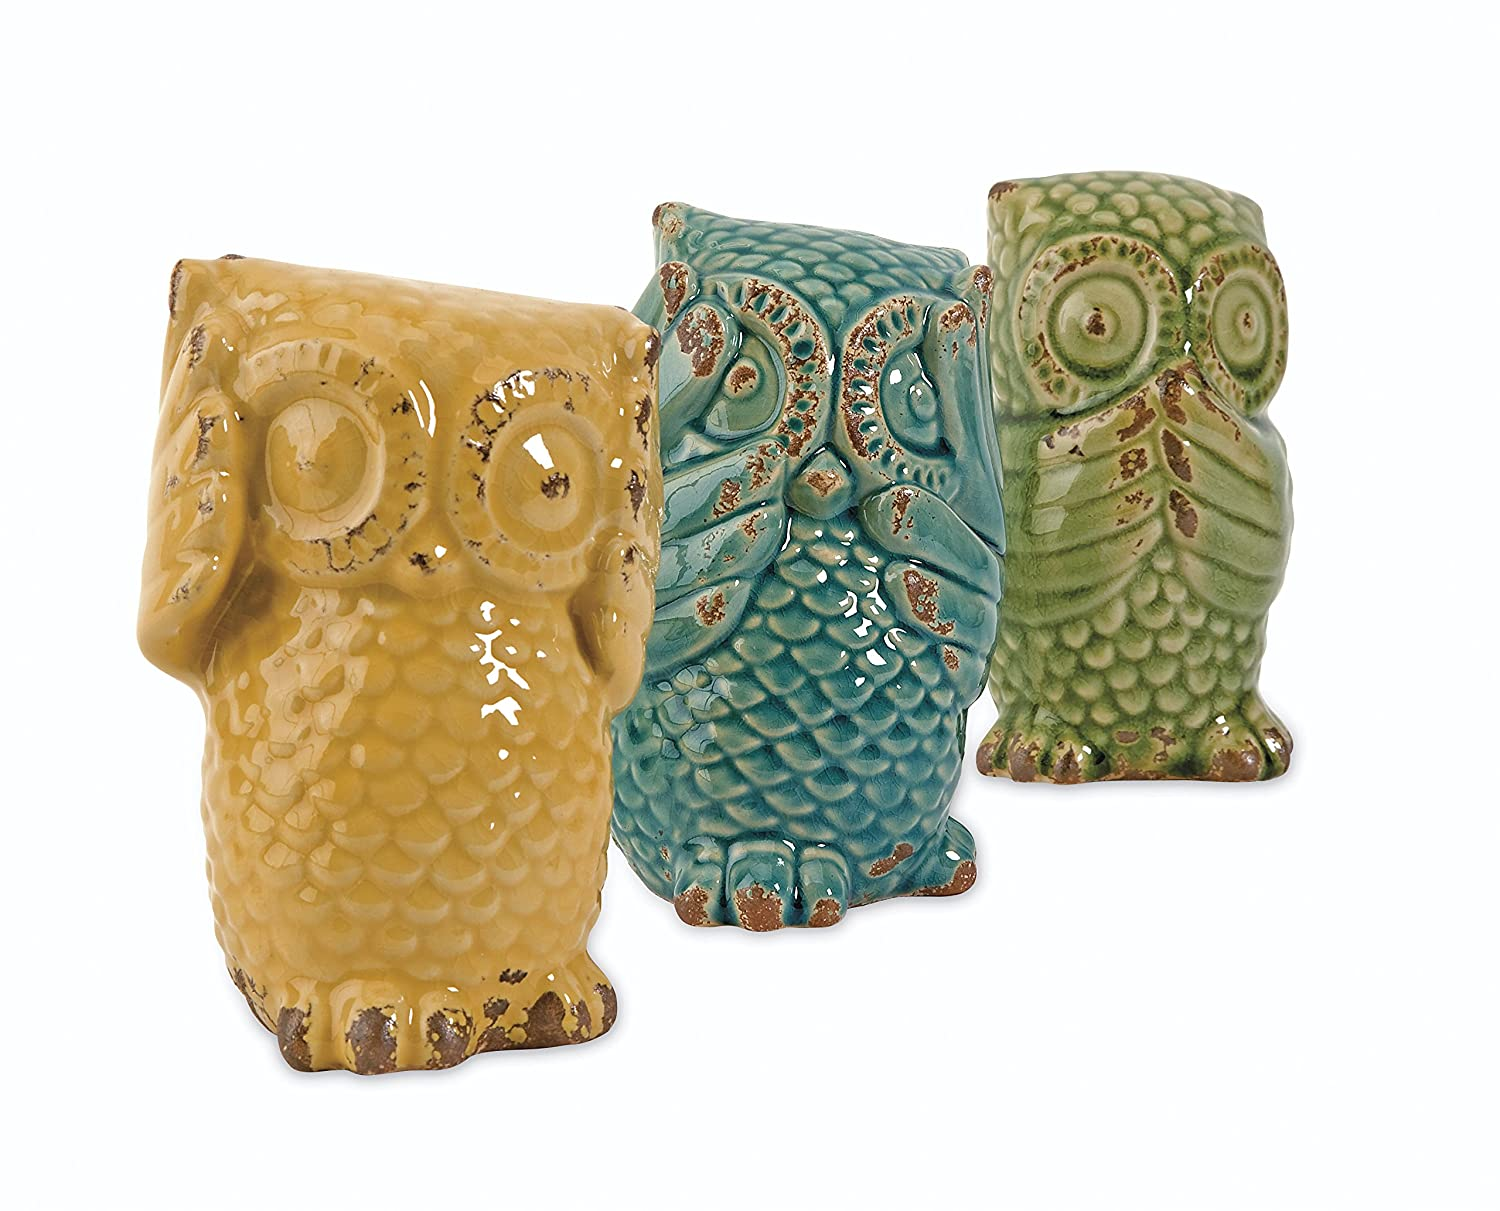 Imax 69230-3 Wise Owls Set of 3 Ceramic Statuaries, Handcrafted Decor Accessories, Vintage-Inspired Showpieces. Home Decor